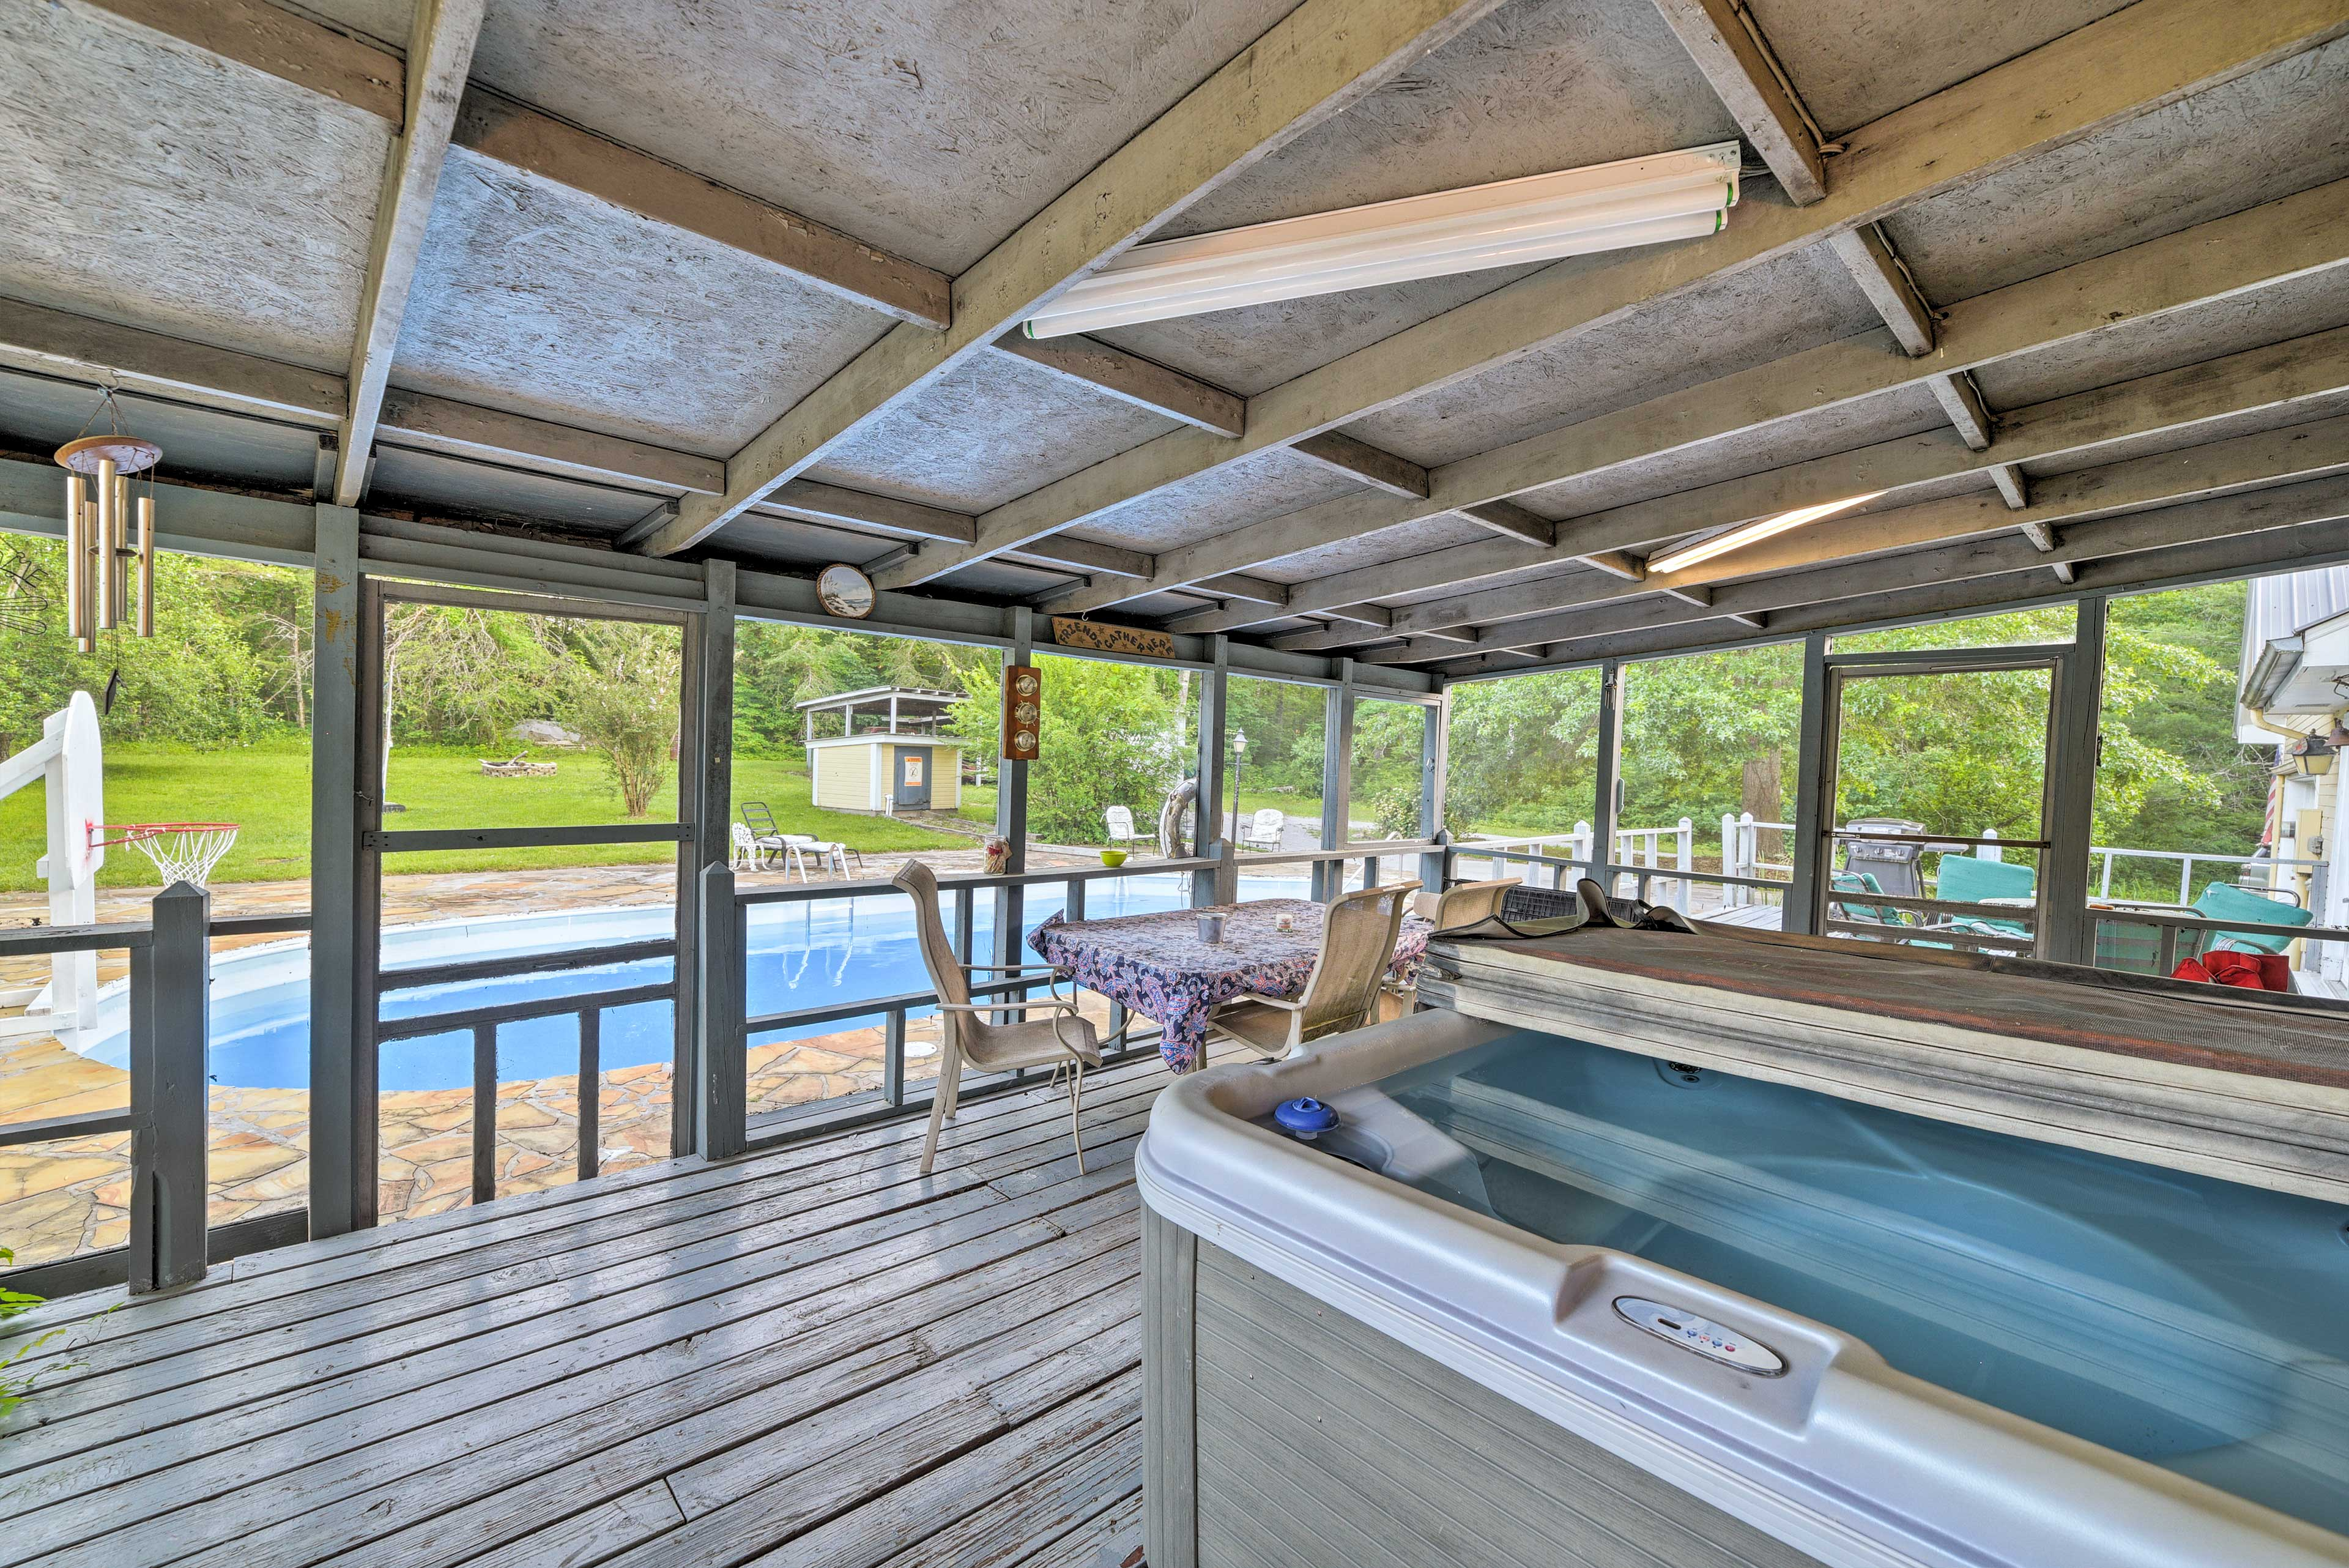 Take a relaxing dip in the private hot tub with your loved ones.